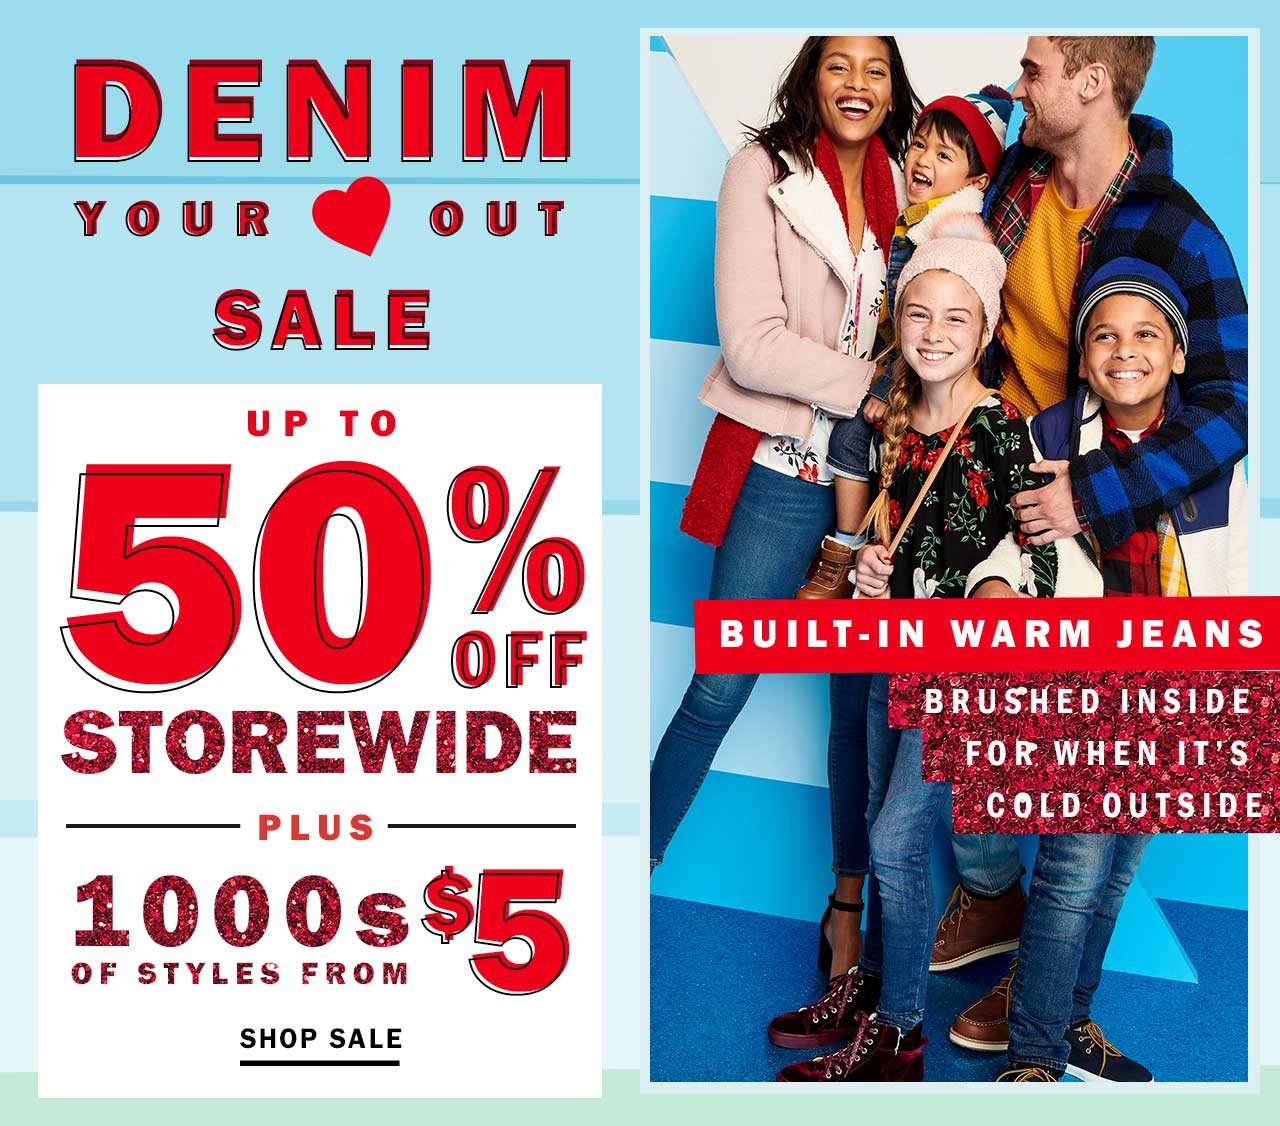 $5 STYLES - Old Navy Email Archive